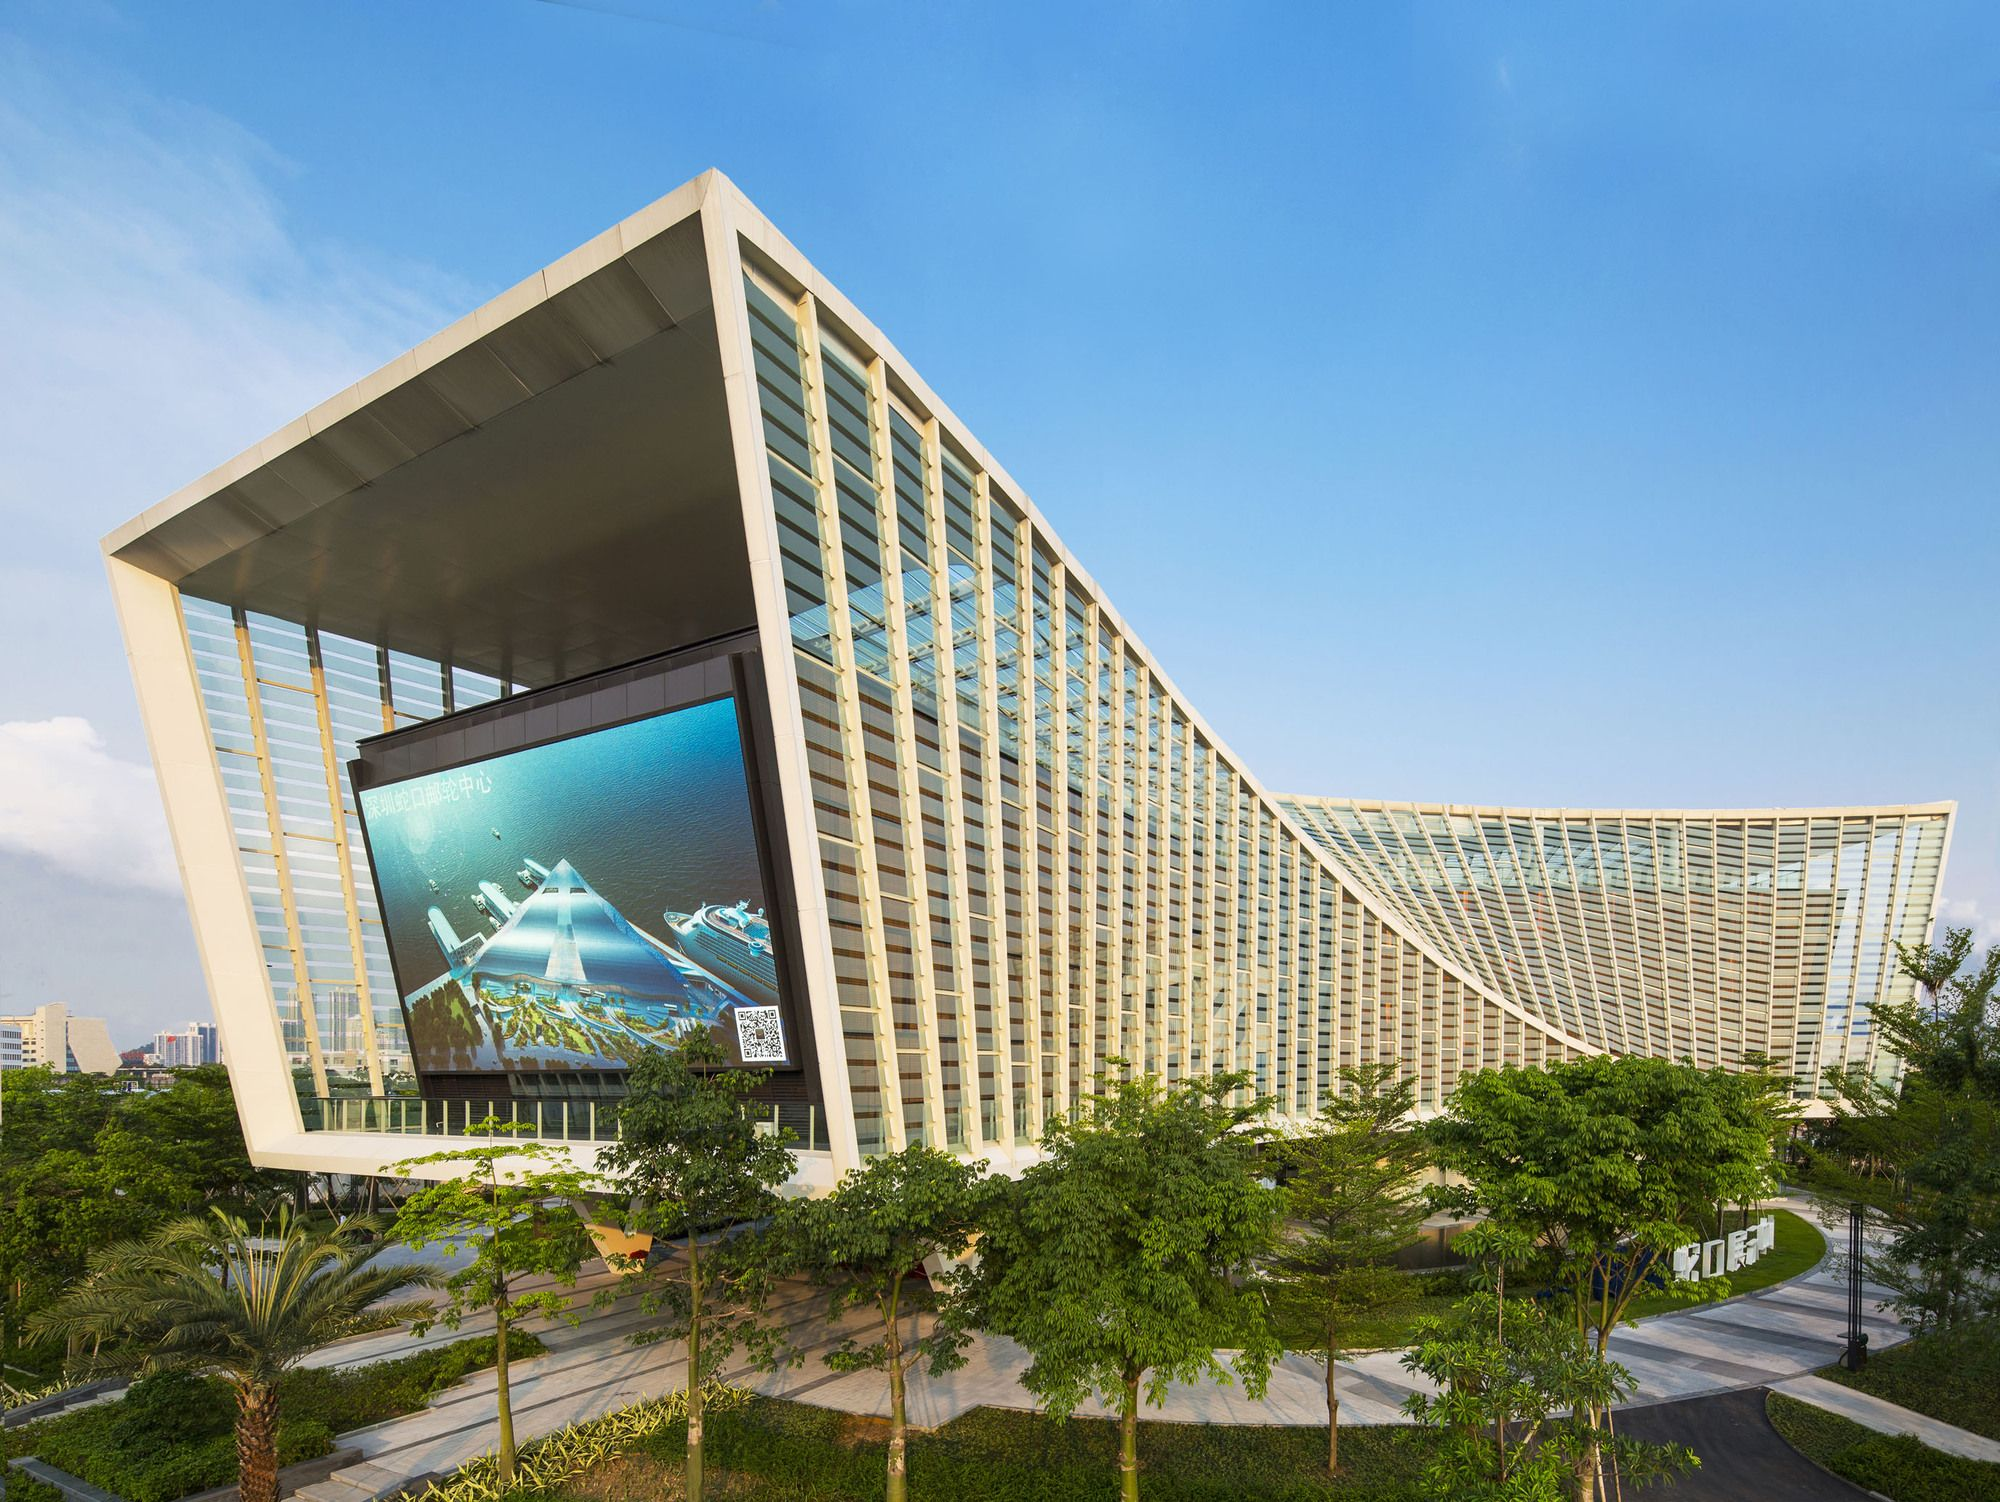 Prince bay marketing exhibition centre aecom for Arquitectura china moderna